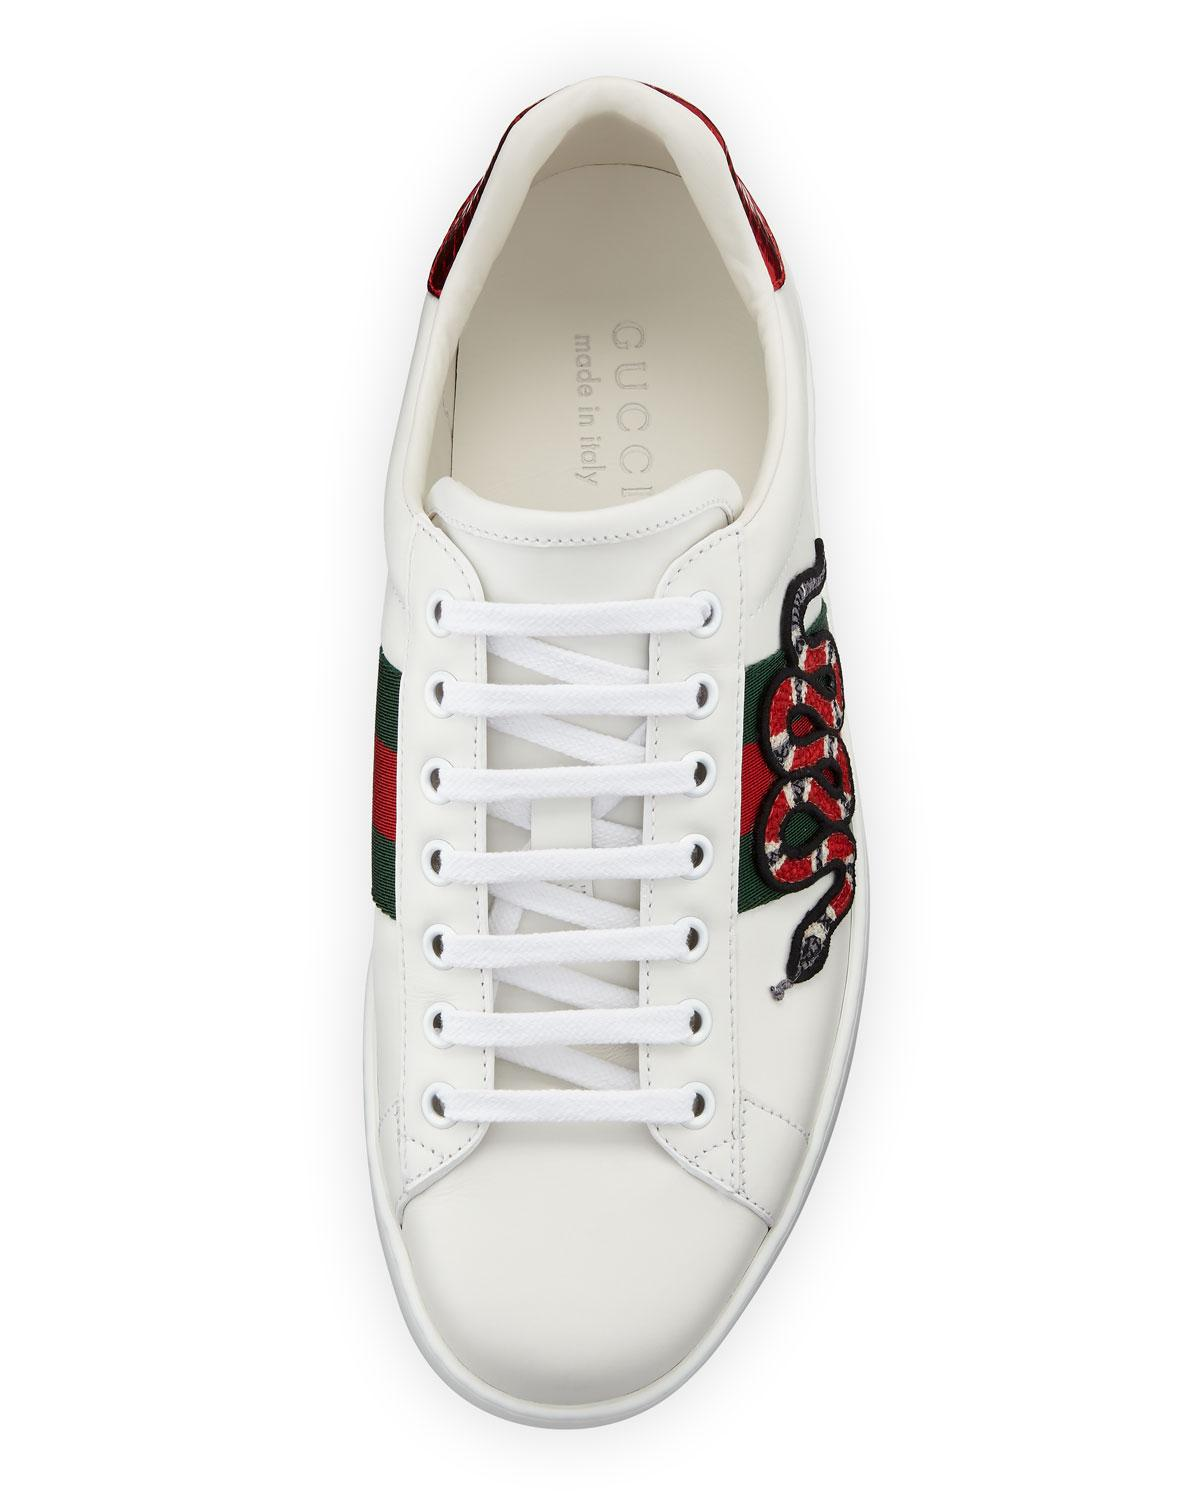 314b707e852c Lyst - Gucci New Ace Men s Snake Sneakers in White for Men